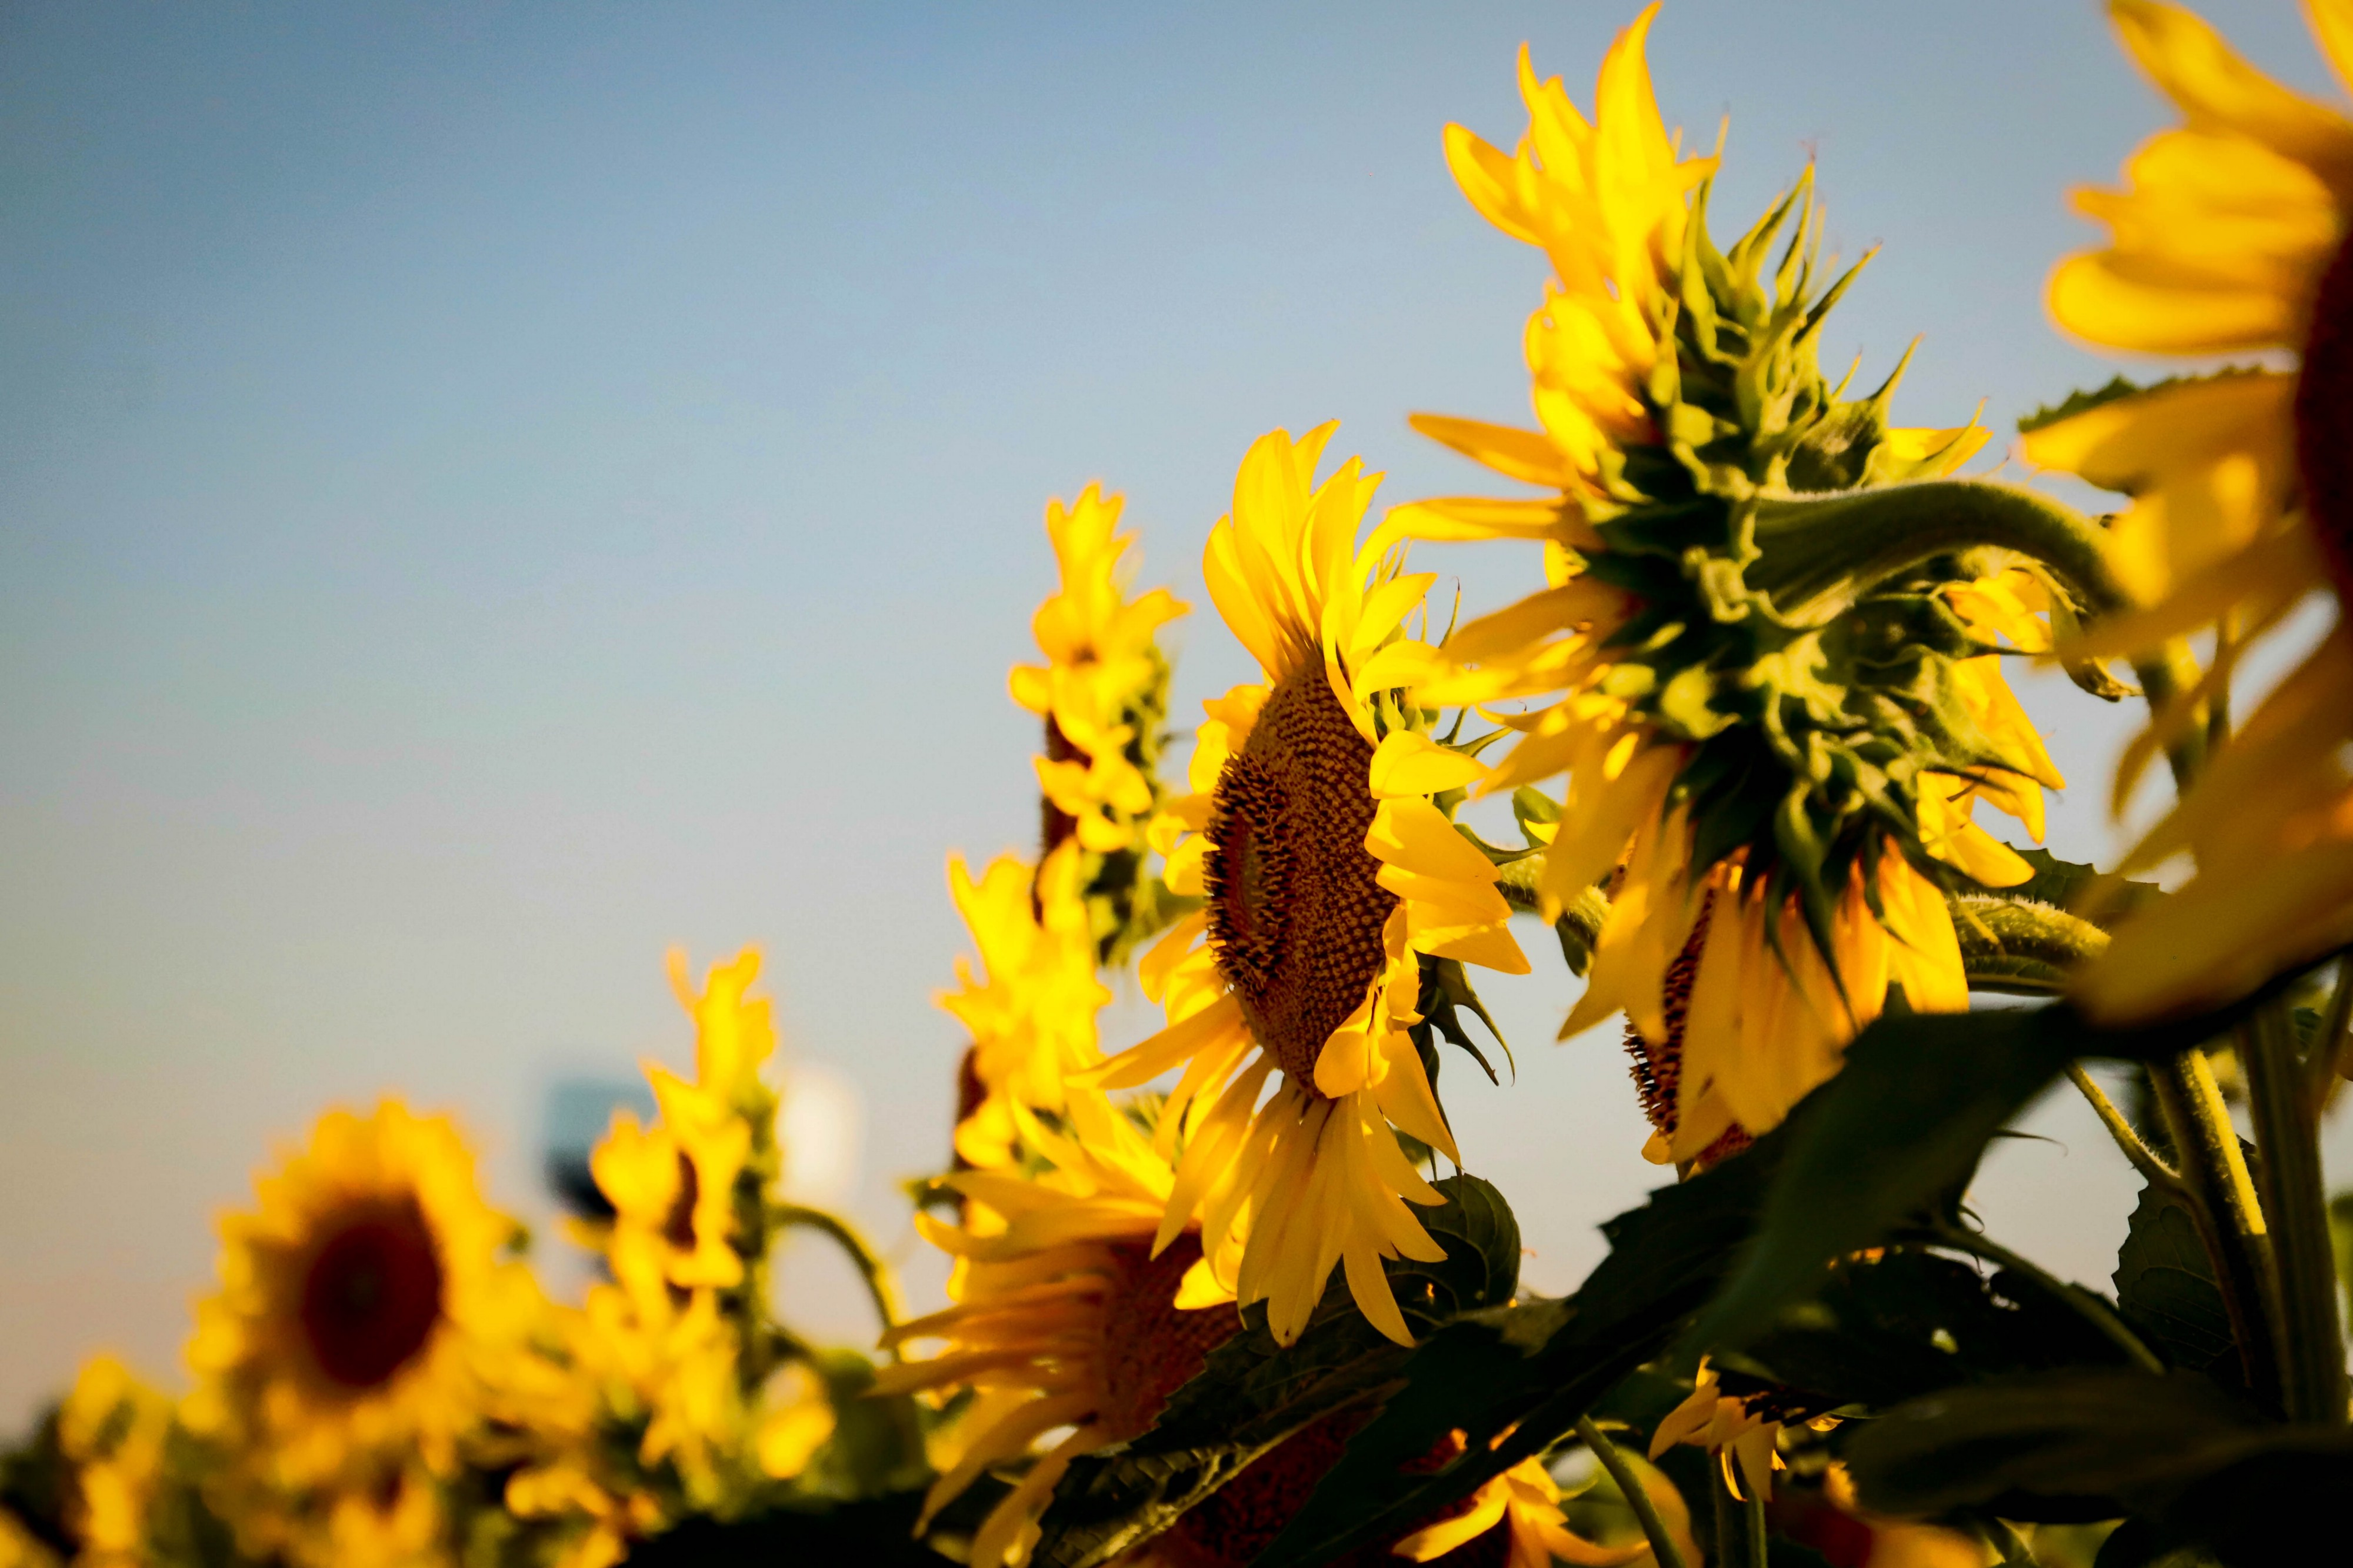 A row of sunflowers growing in the sunshine against a background of blue sky.